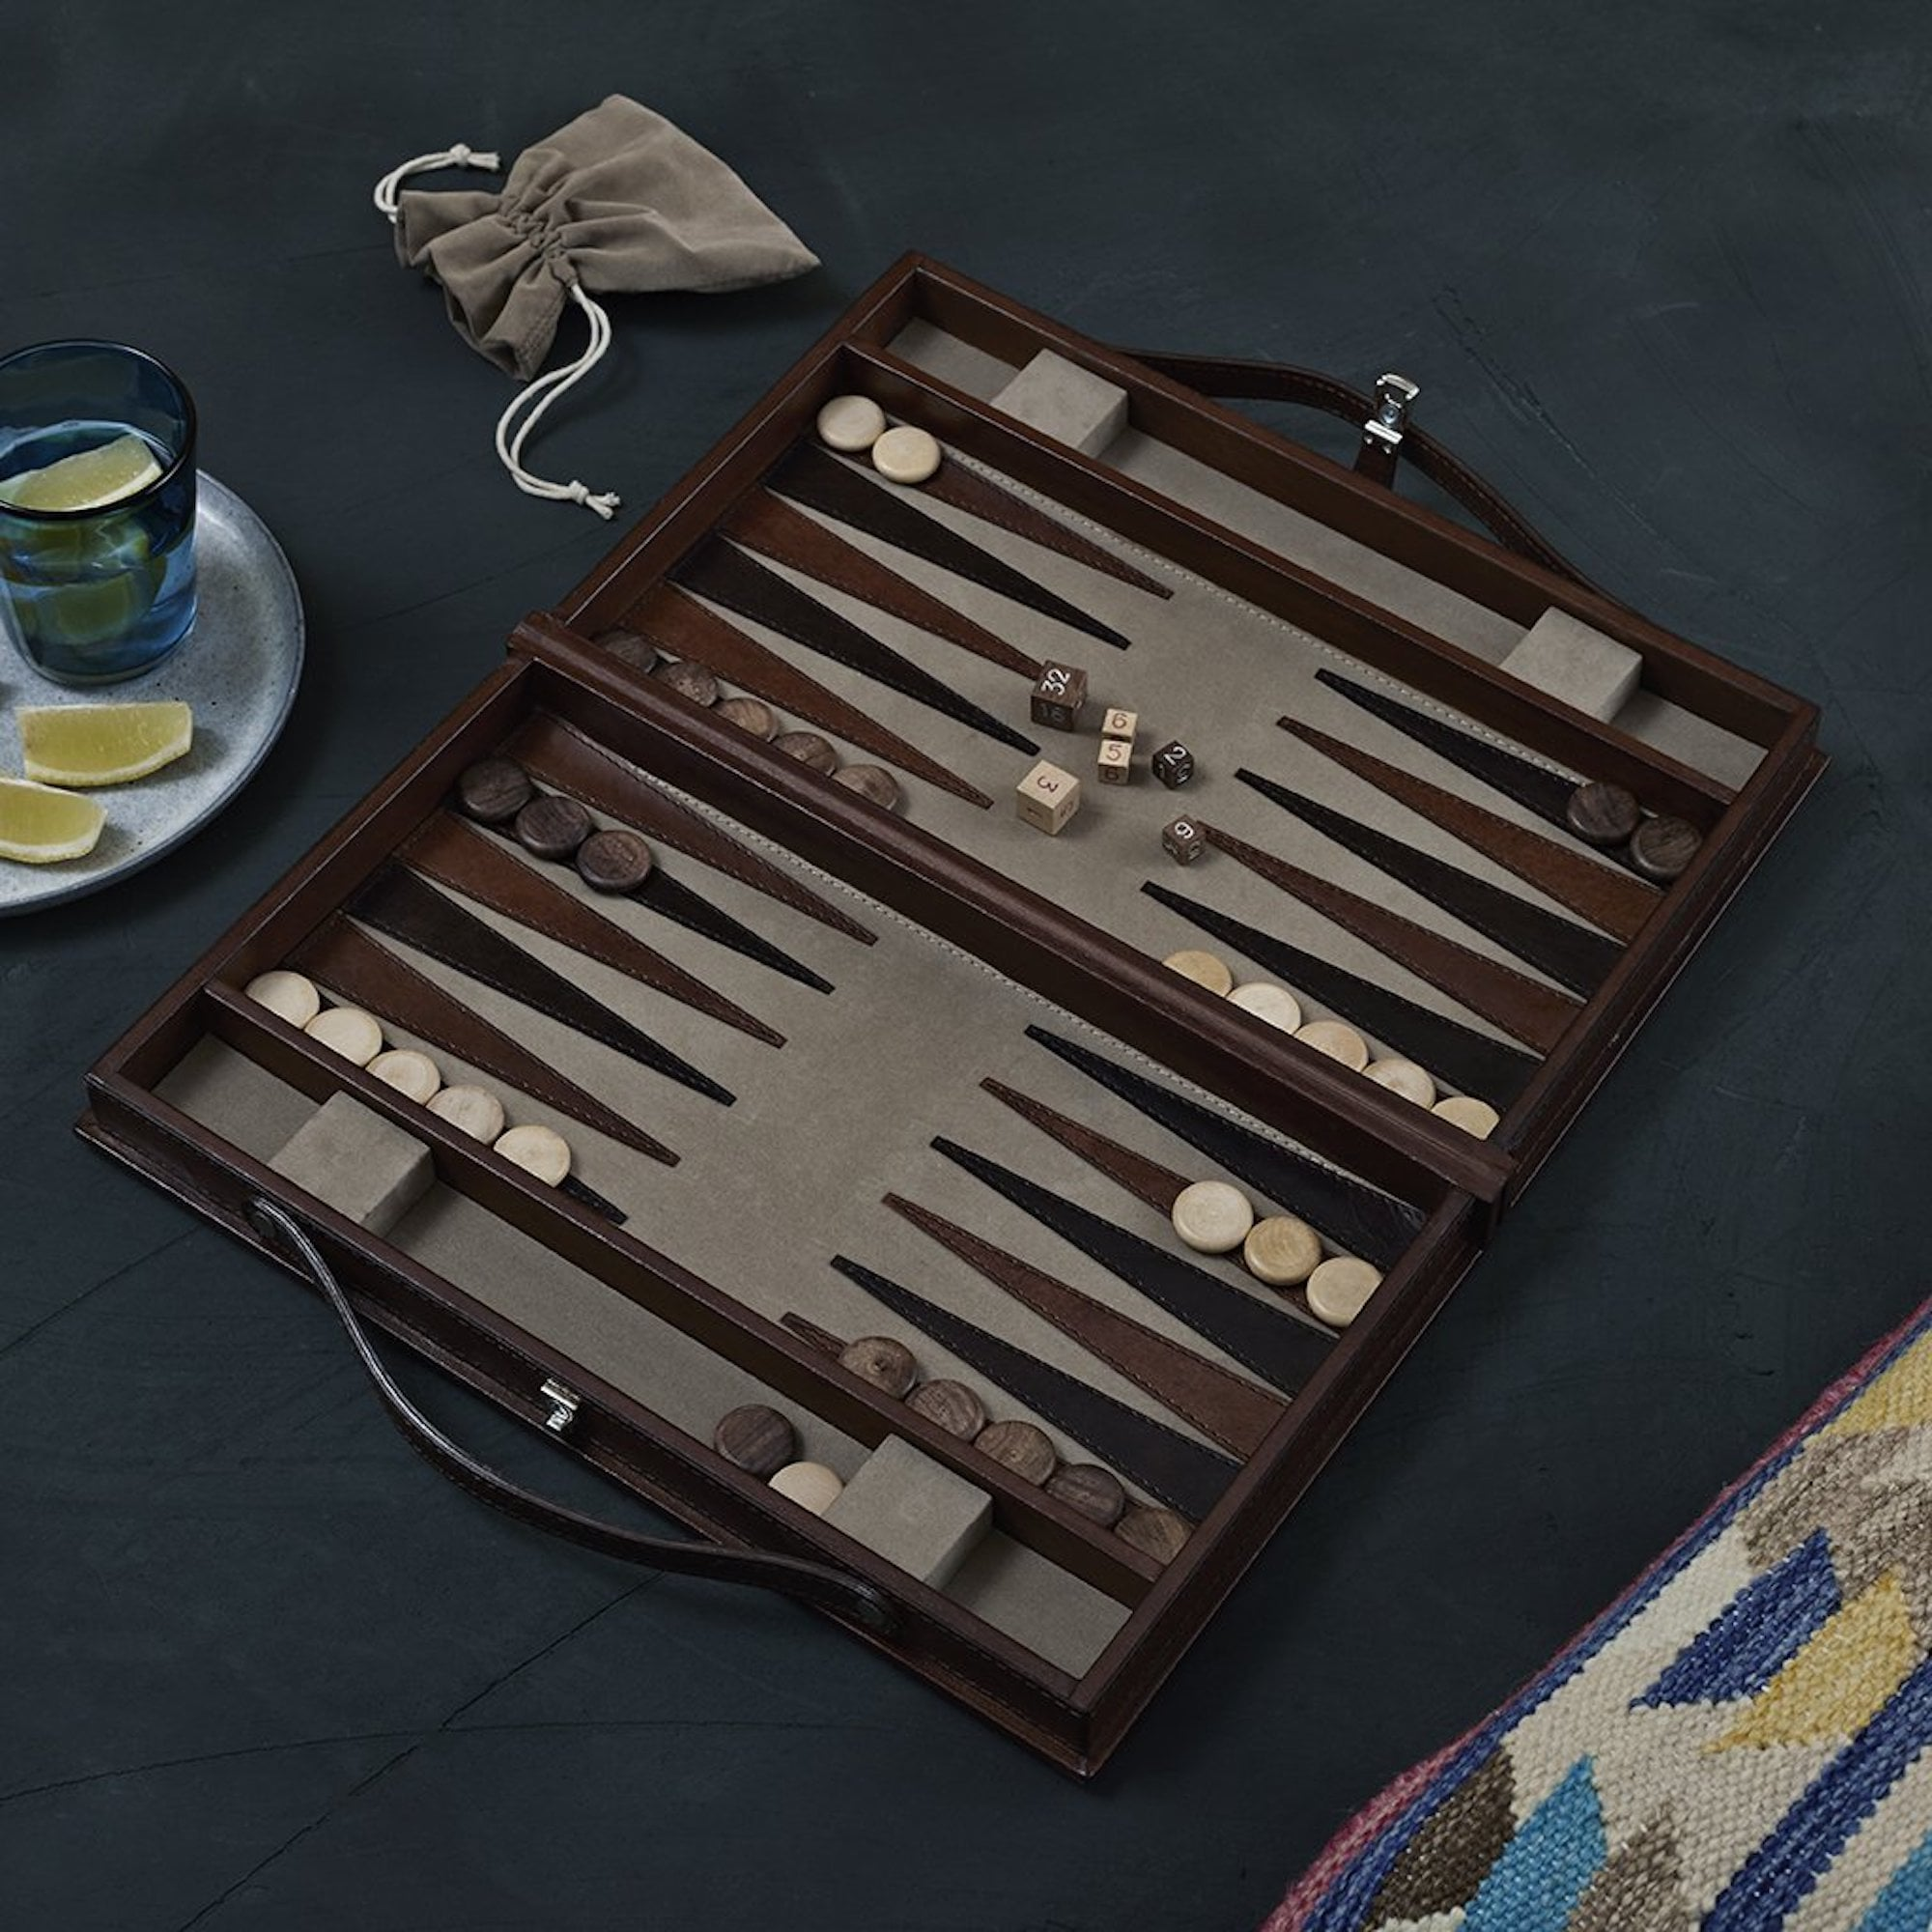 J.A. Marshall & Sons Leather Bound Backgammon Set